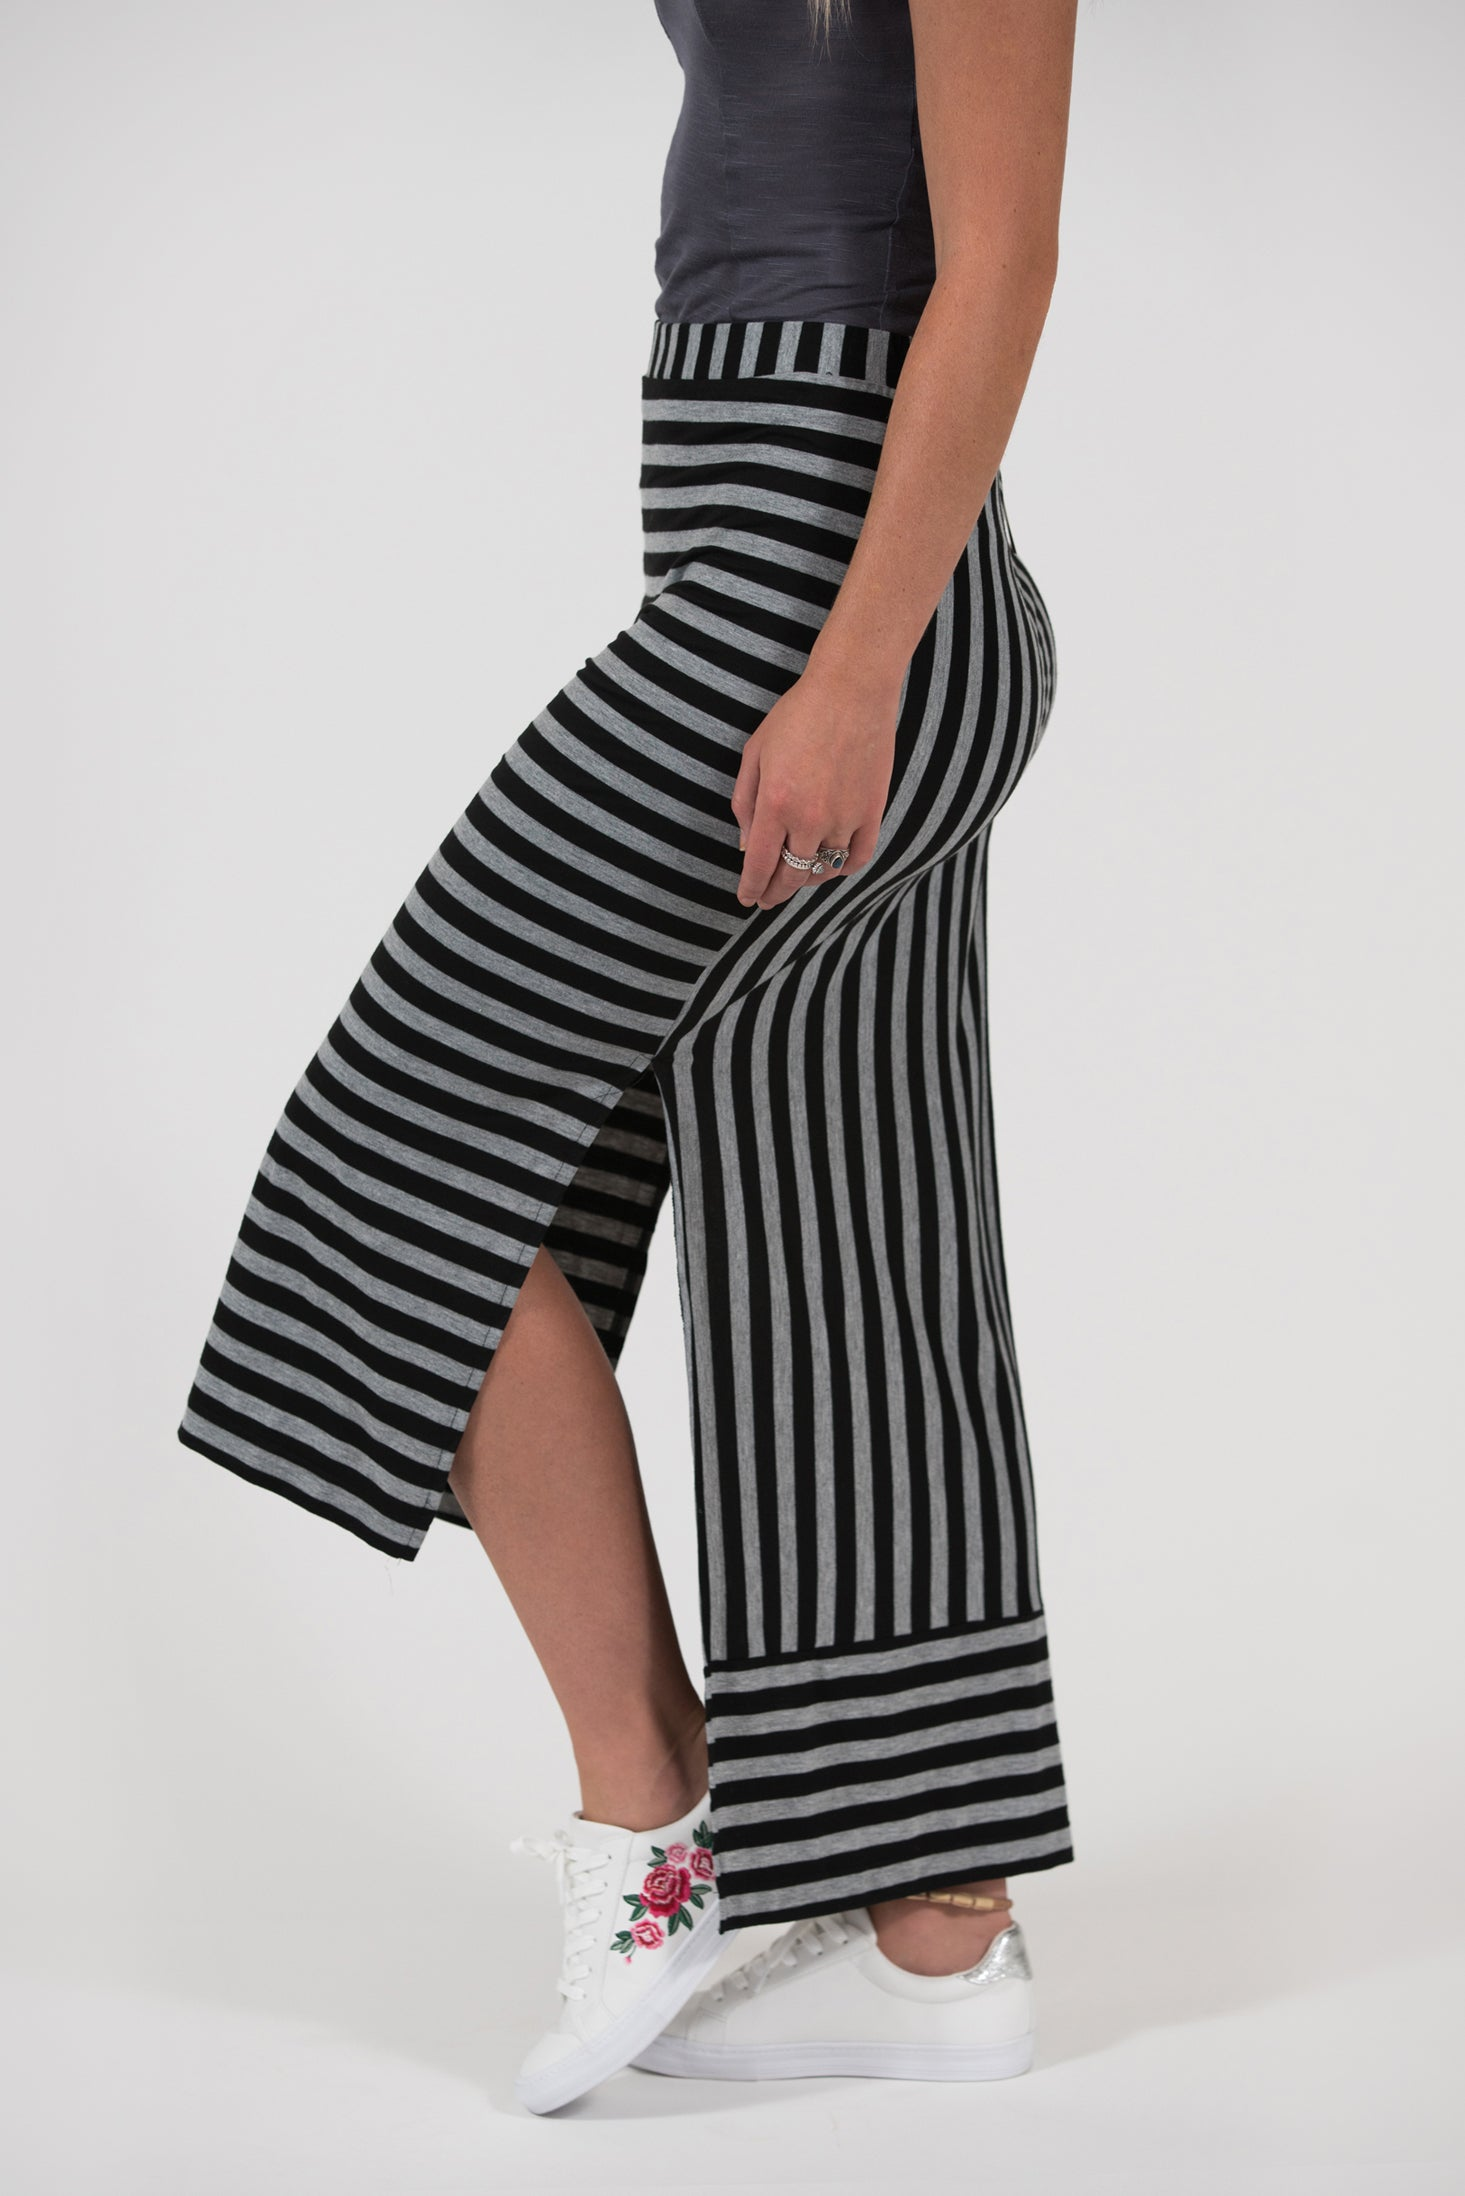 stretch knit striped skirt Largo